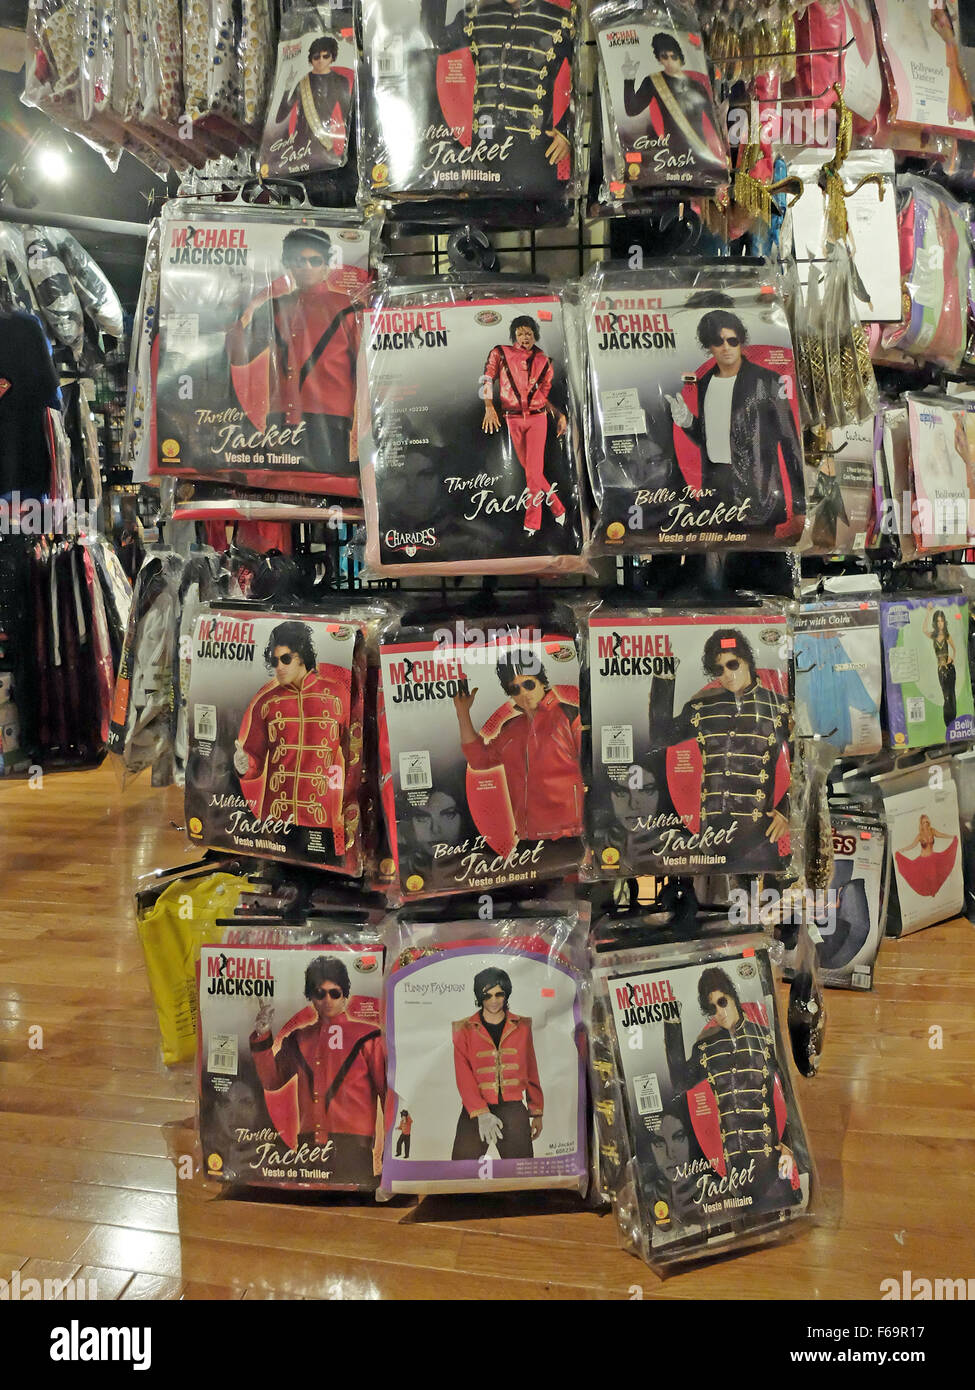 Michael Jackson costumes for sale at a large costume store in ...